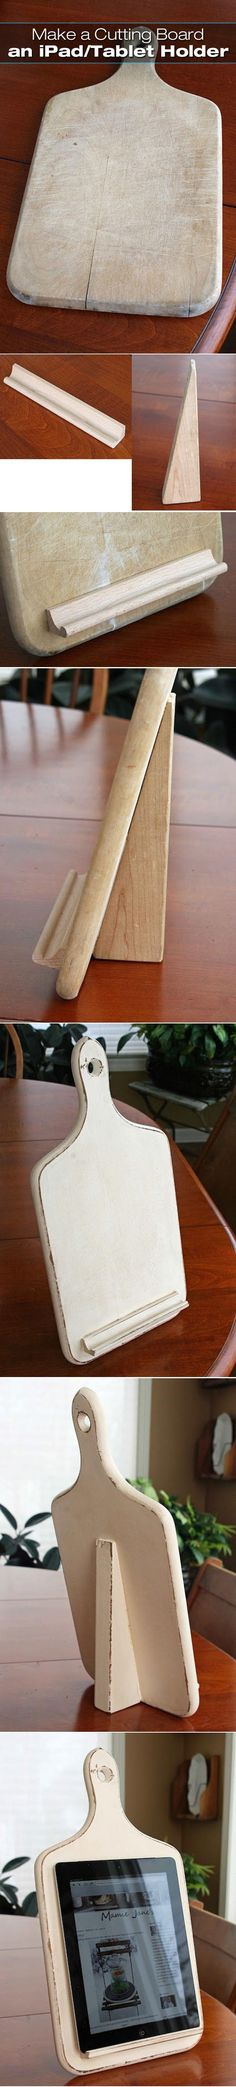 How to Make an iPad/Tablet Stand with a Cutting Board - DIY for Life. BRILLIANT!